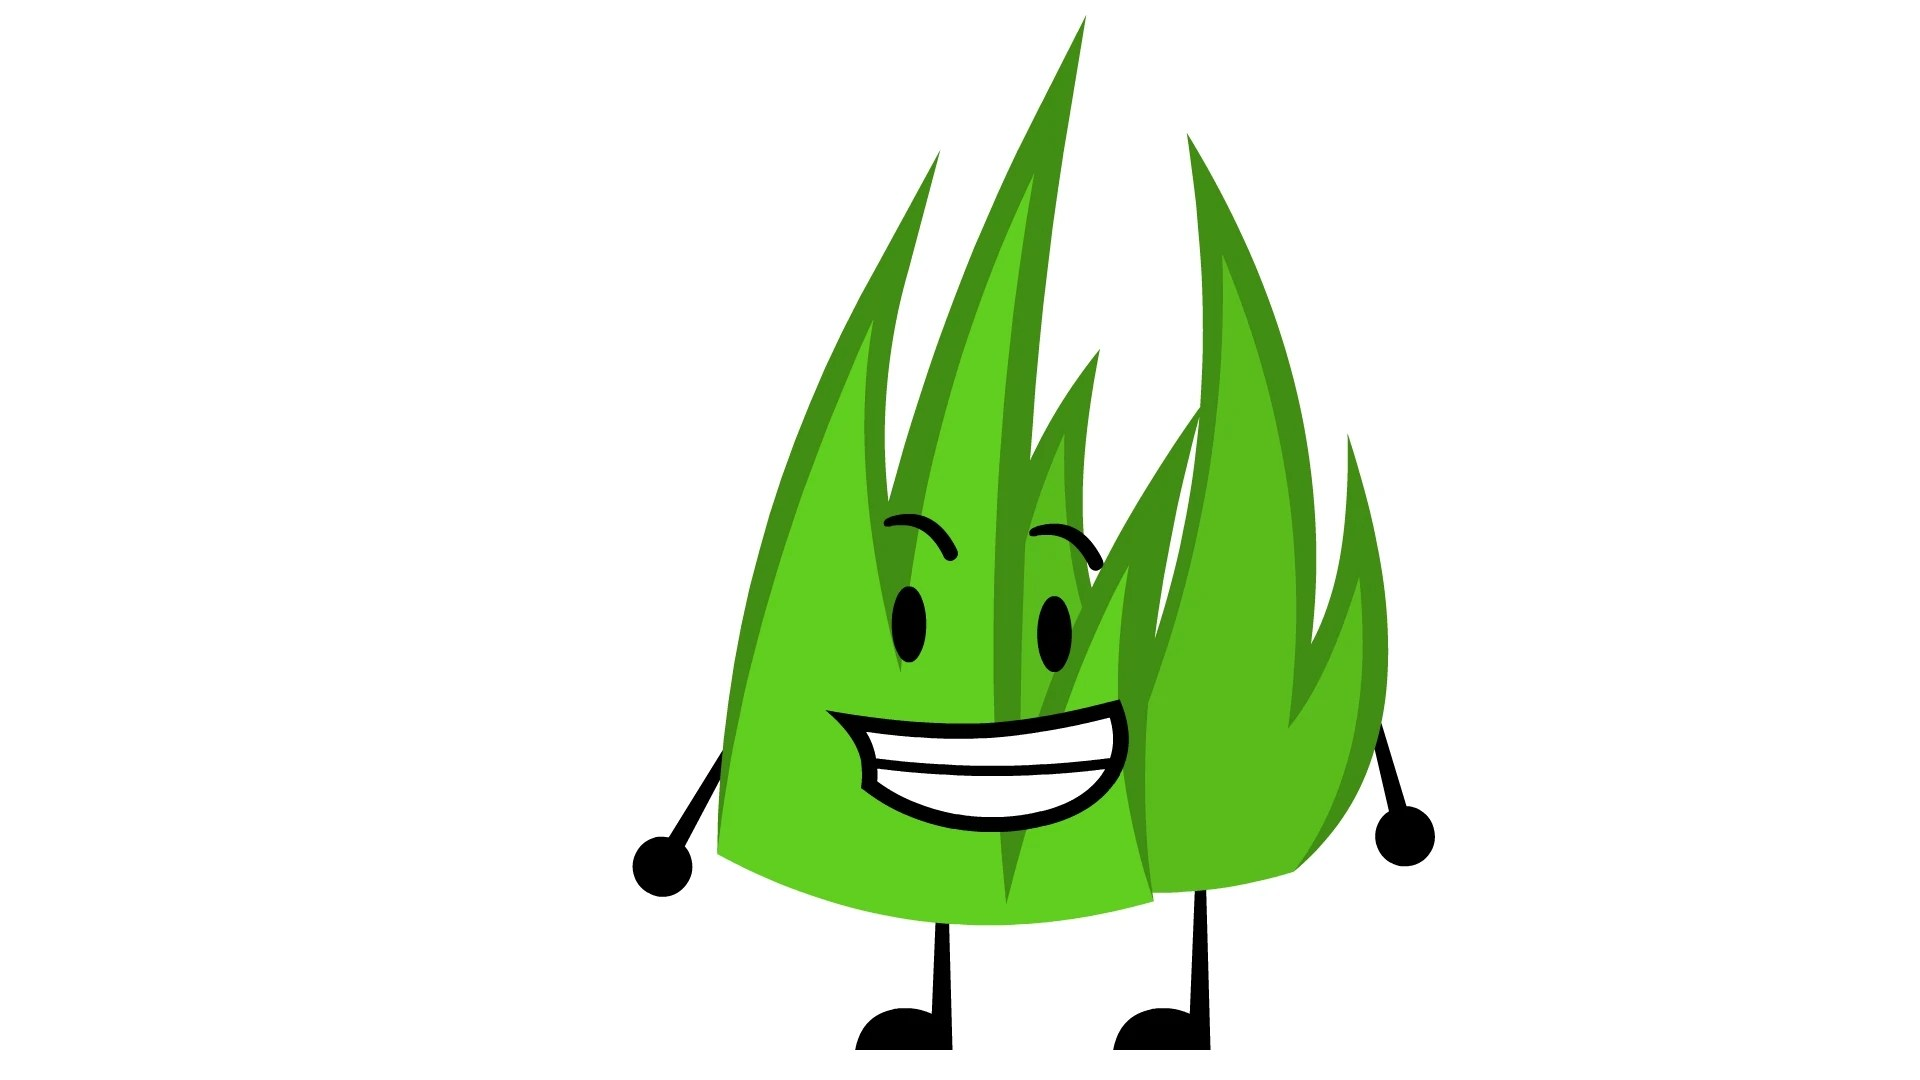 20+ Bfdi Grassy Pictures and Ideas on STEM Education Caucus